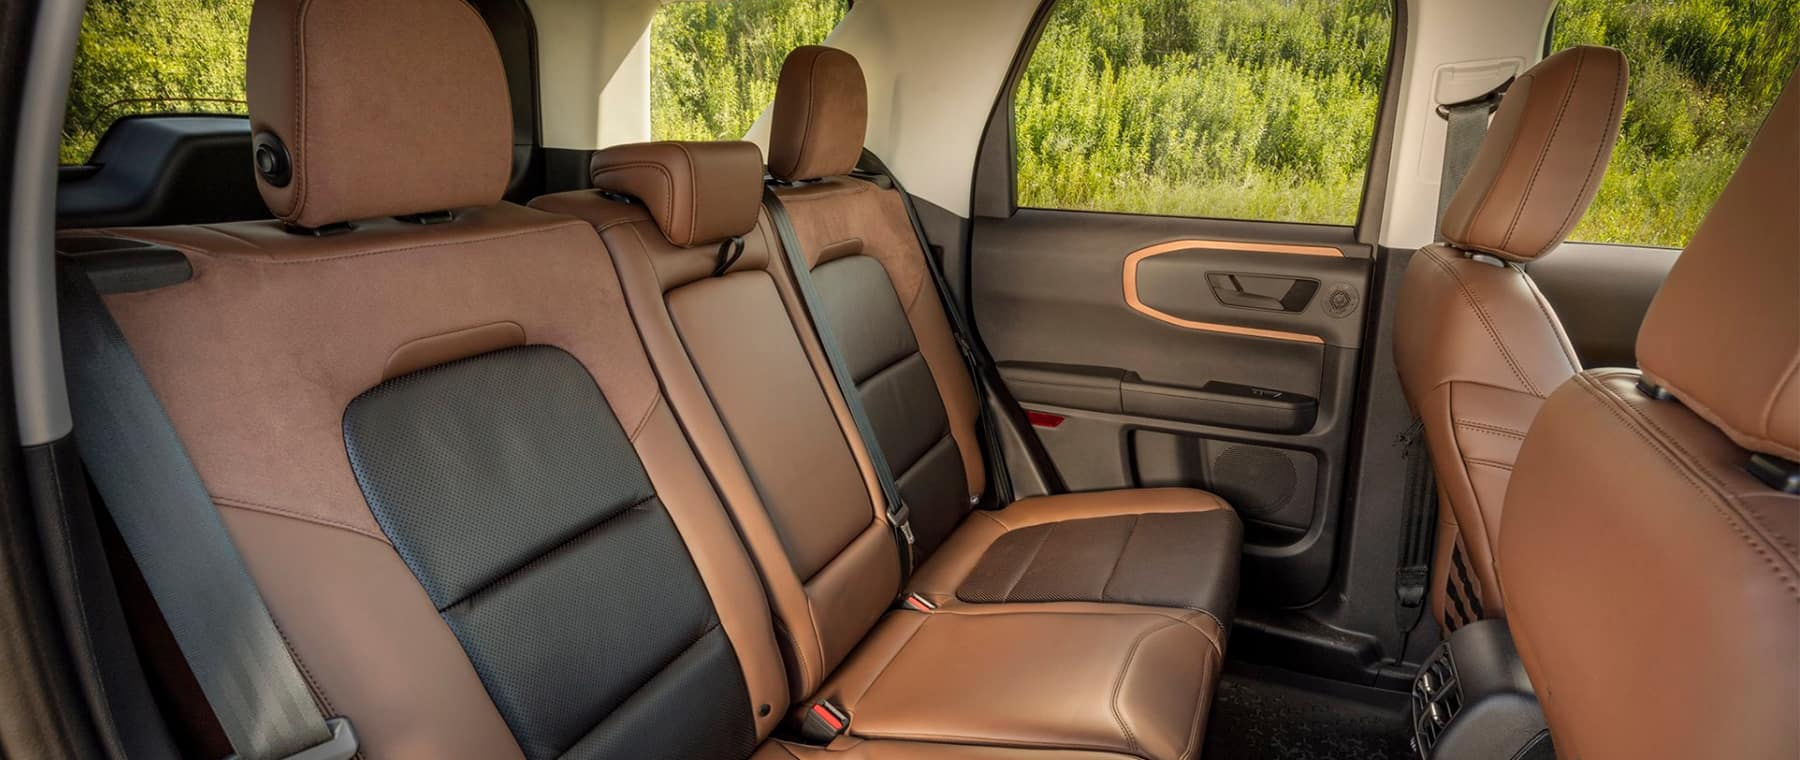 2021 Bronco back seats